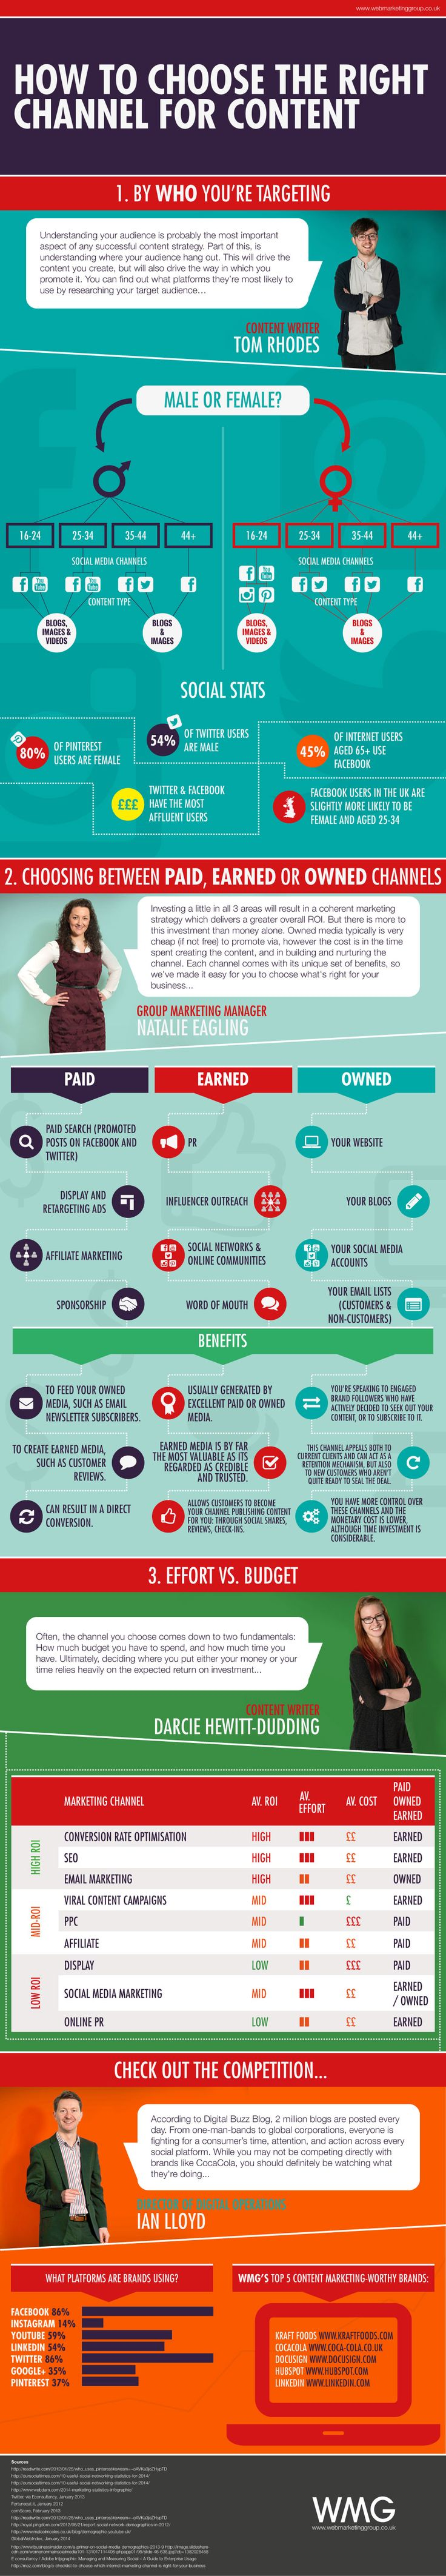 """CONTENT MARKETING - """"How to Choose the Right #Marketing Channel for Your Content - #infographic #ContentMarketing #socialmedia""""."""